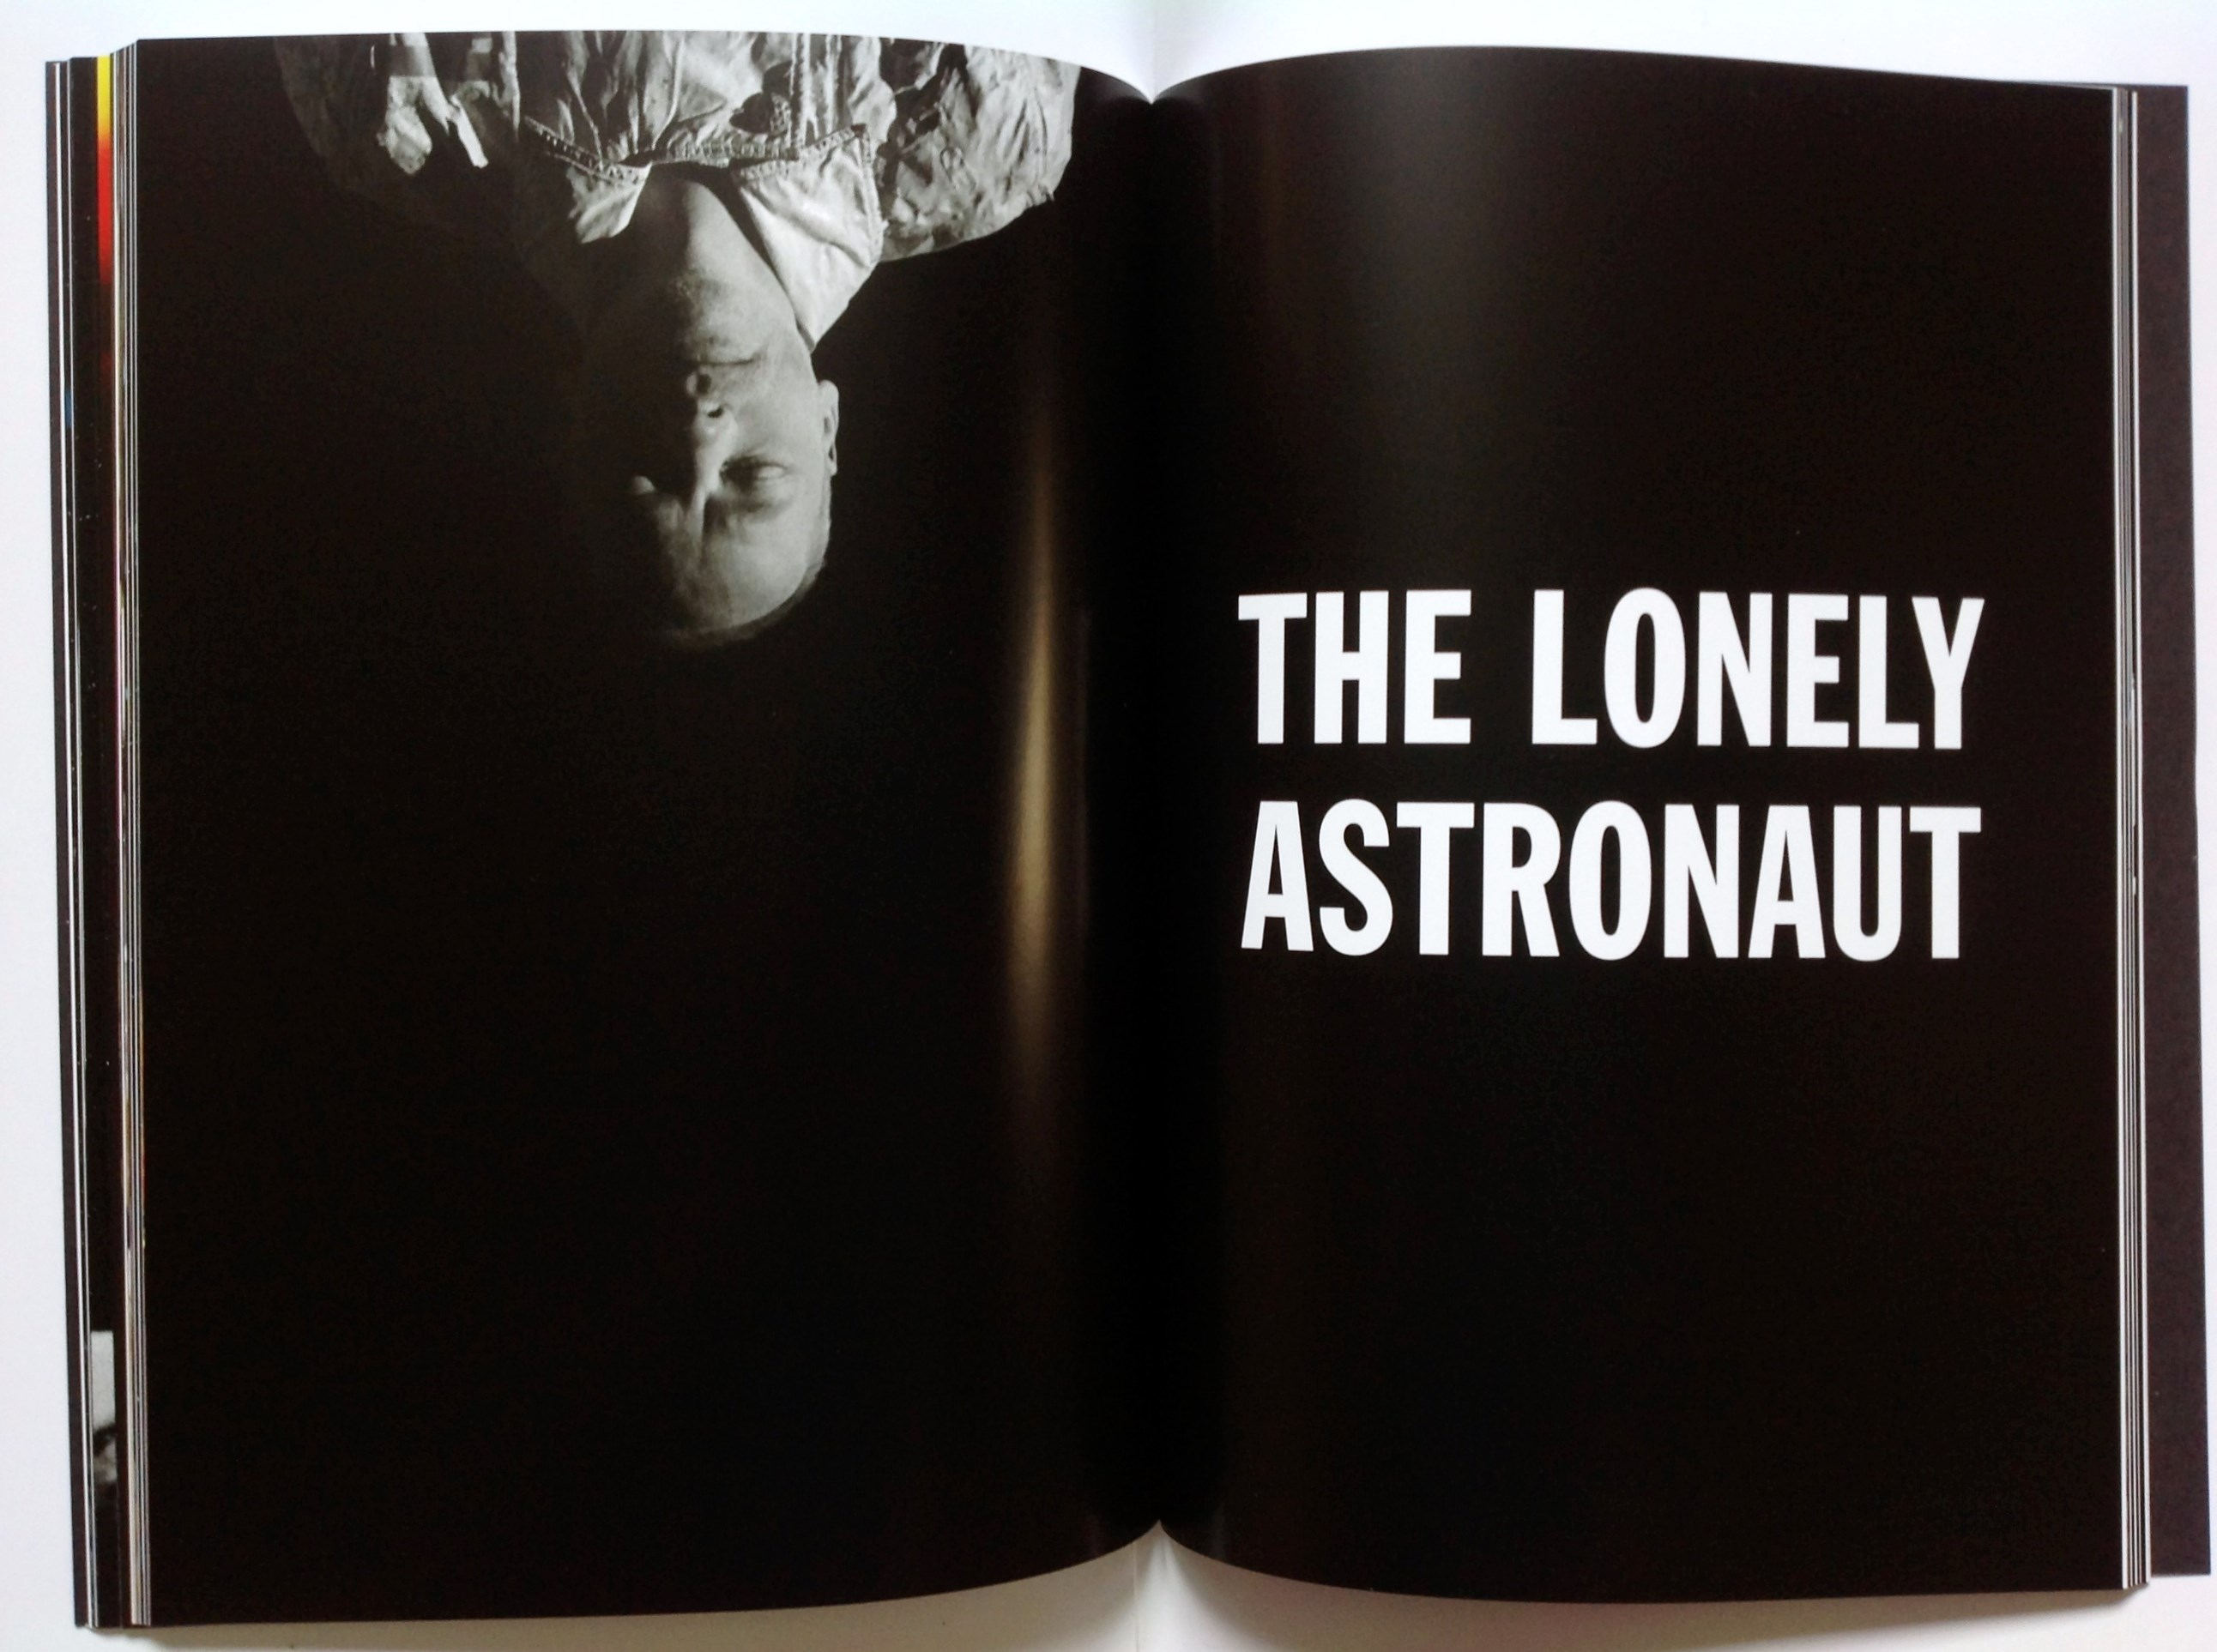 the lonely by tom astronaut - photo #18